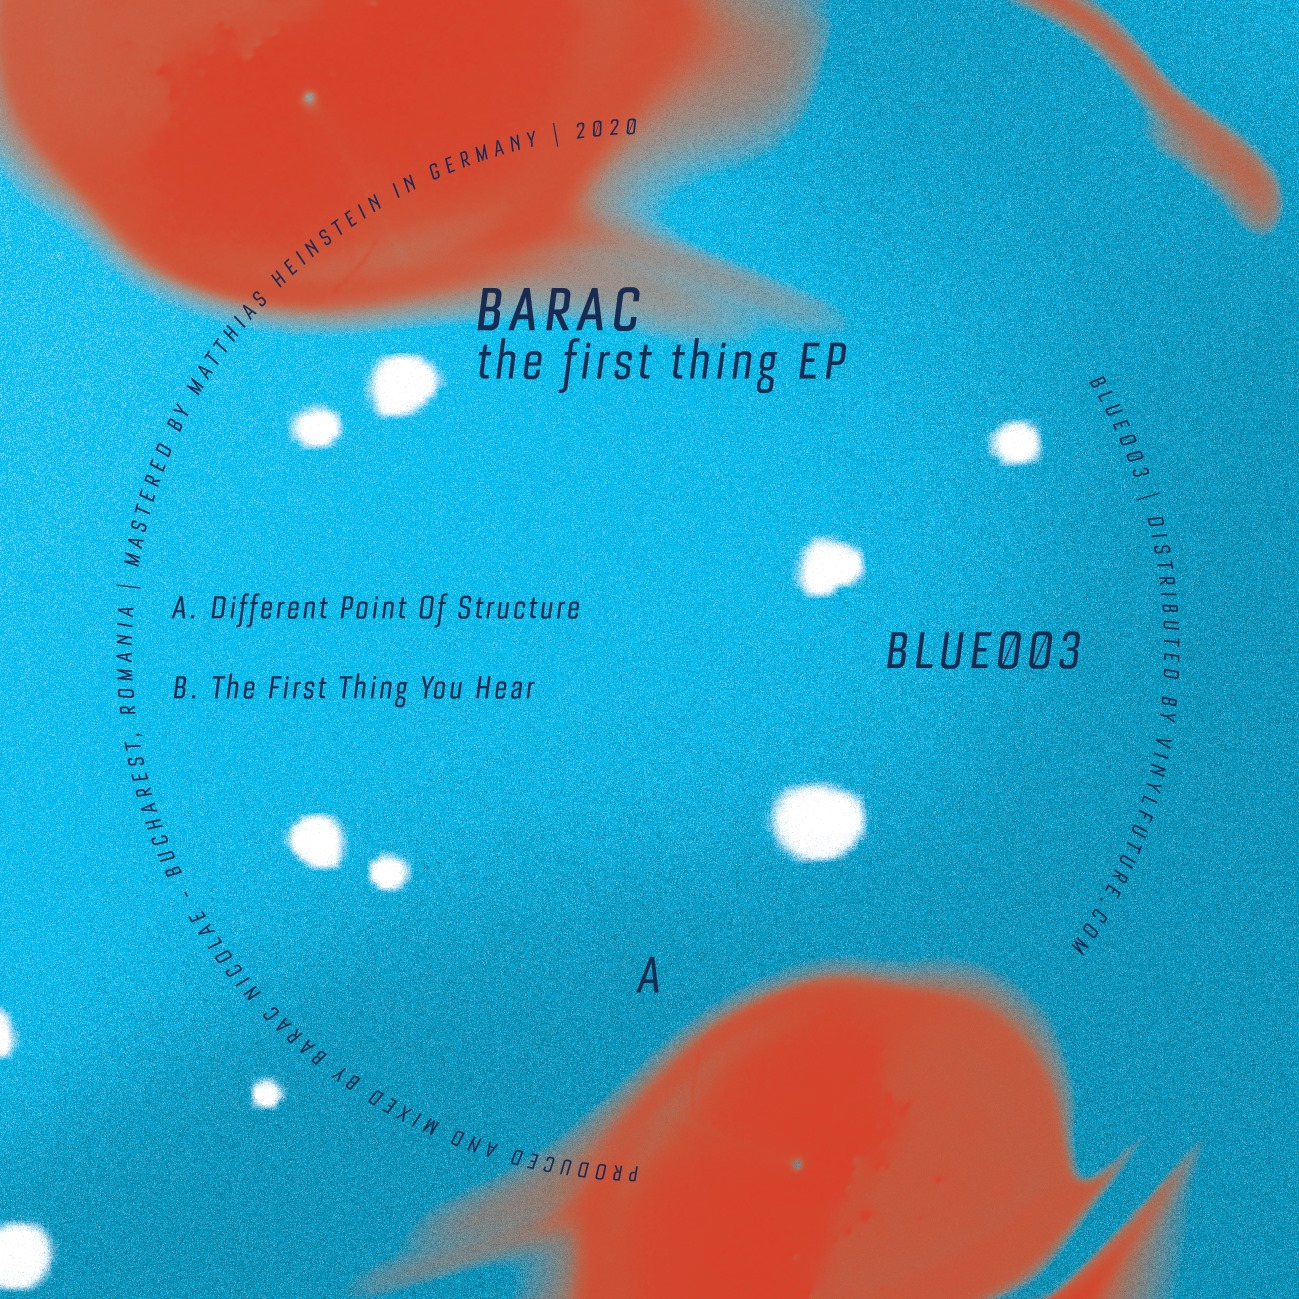 Barac - The First Thing EP [Blue] 001